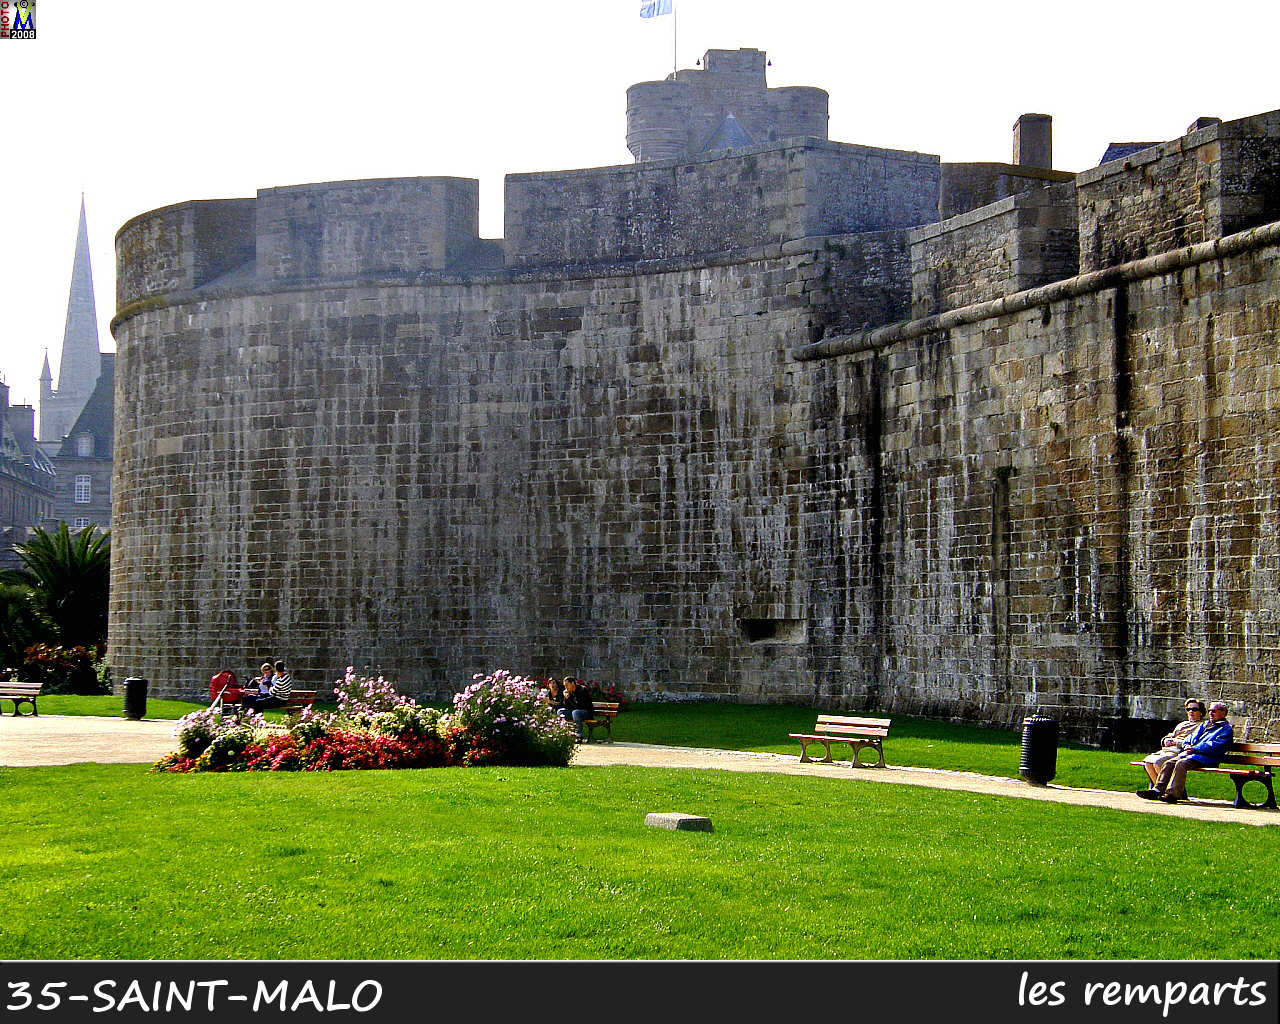 35StMALO_remparts_104.jpg